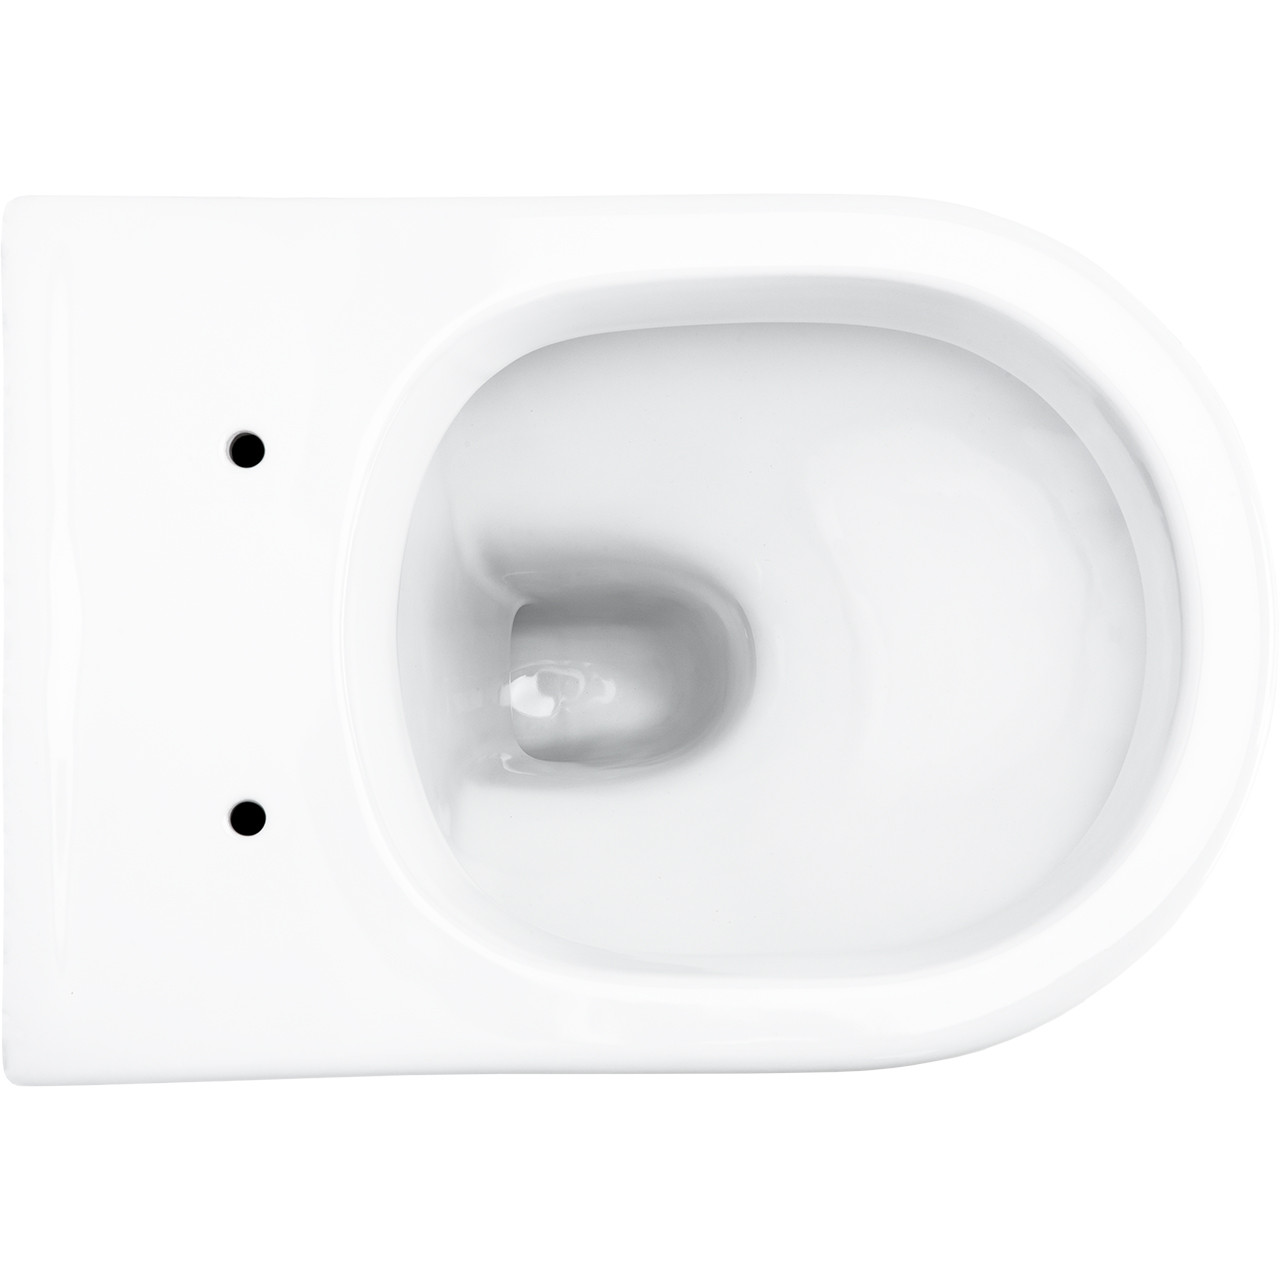 D-Shape Back to Wall Pan Overhead